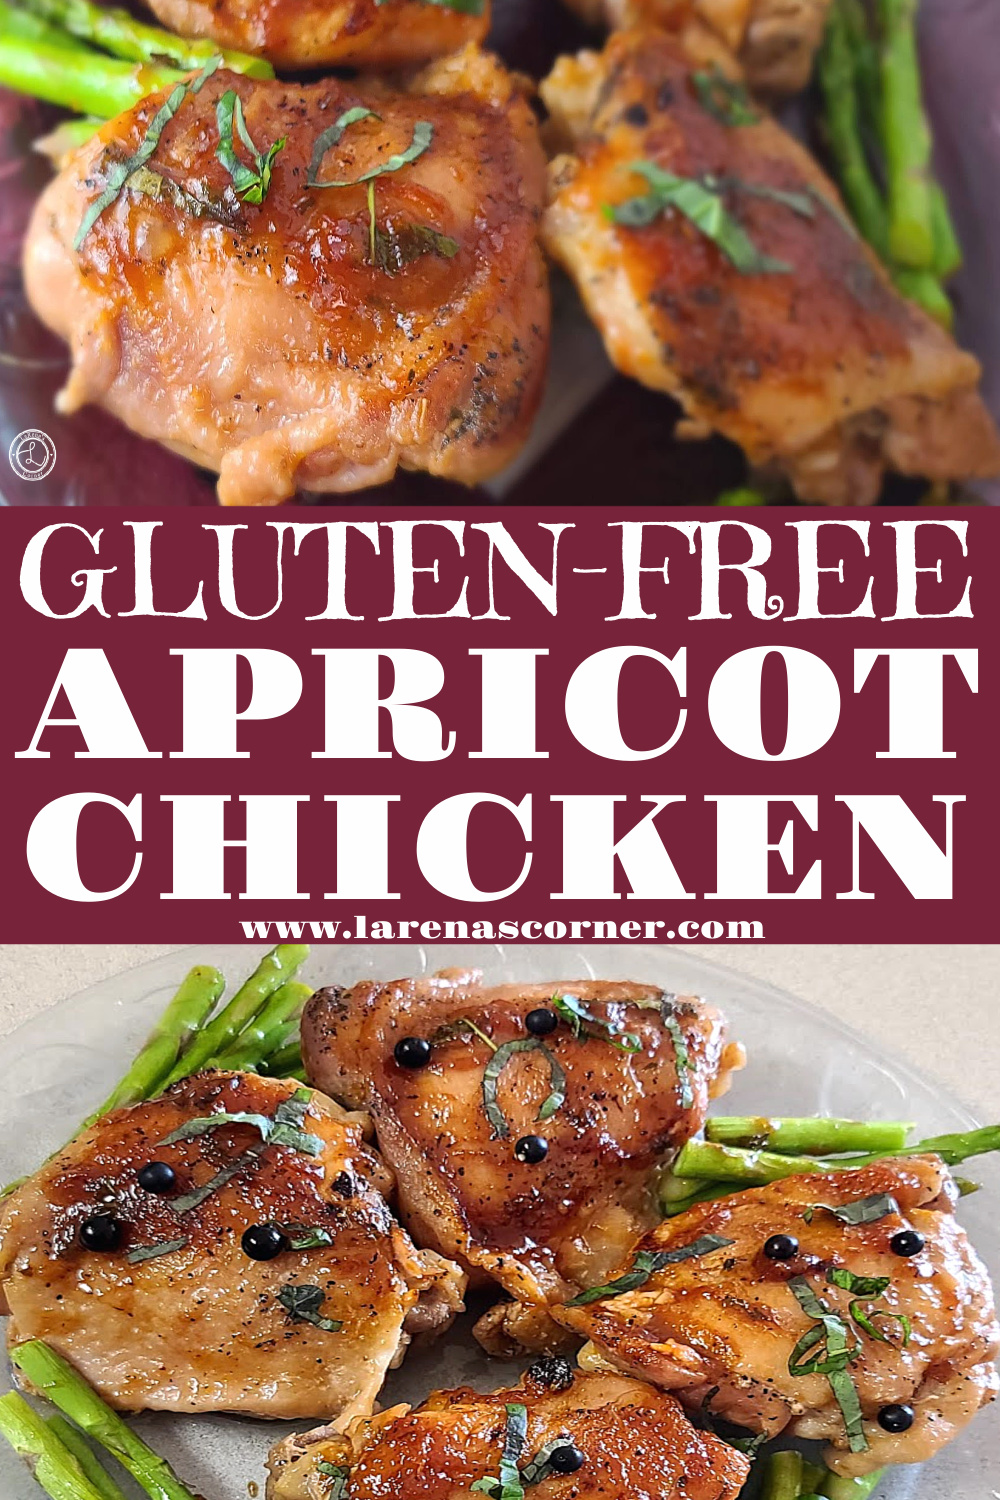 Italian Apricot Chicken. Two pictures of the chicken. One close up and one farther away.